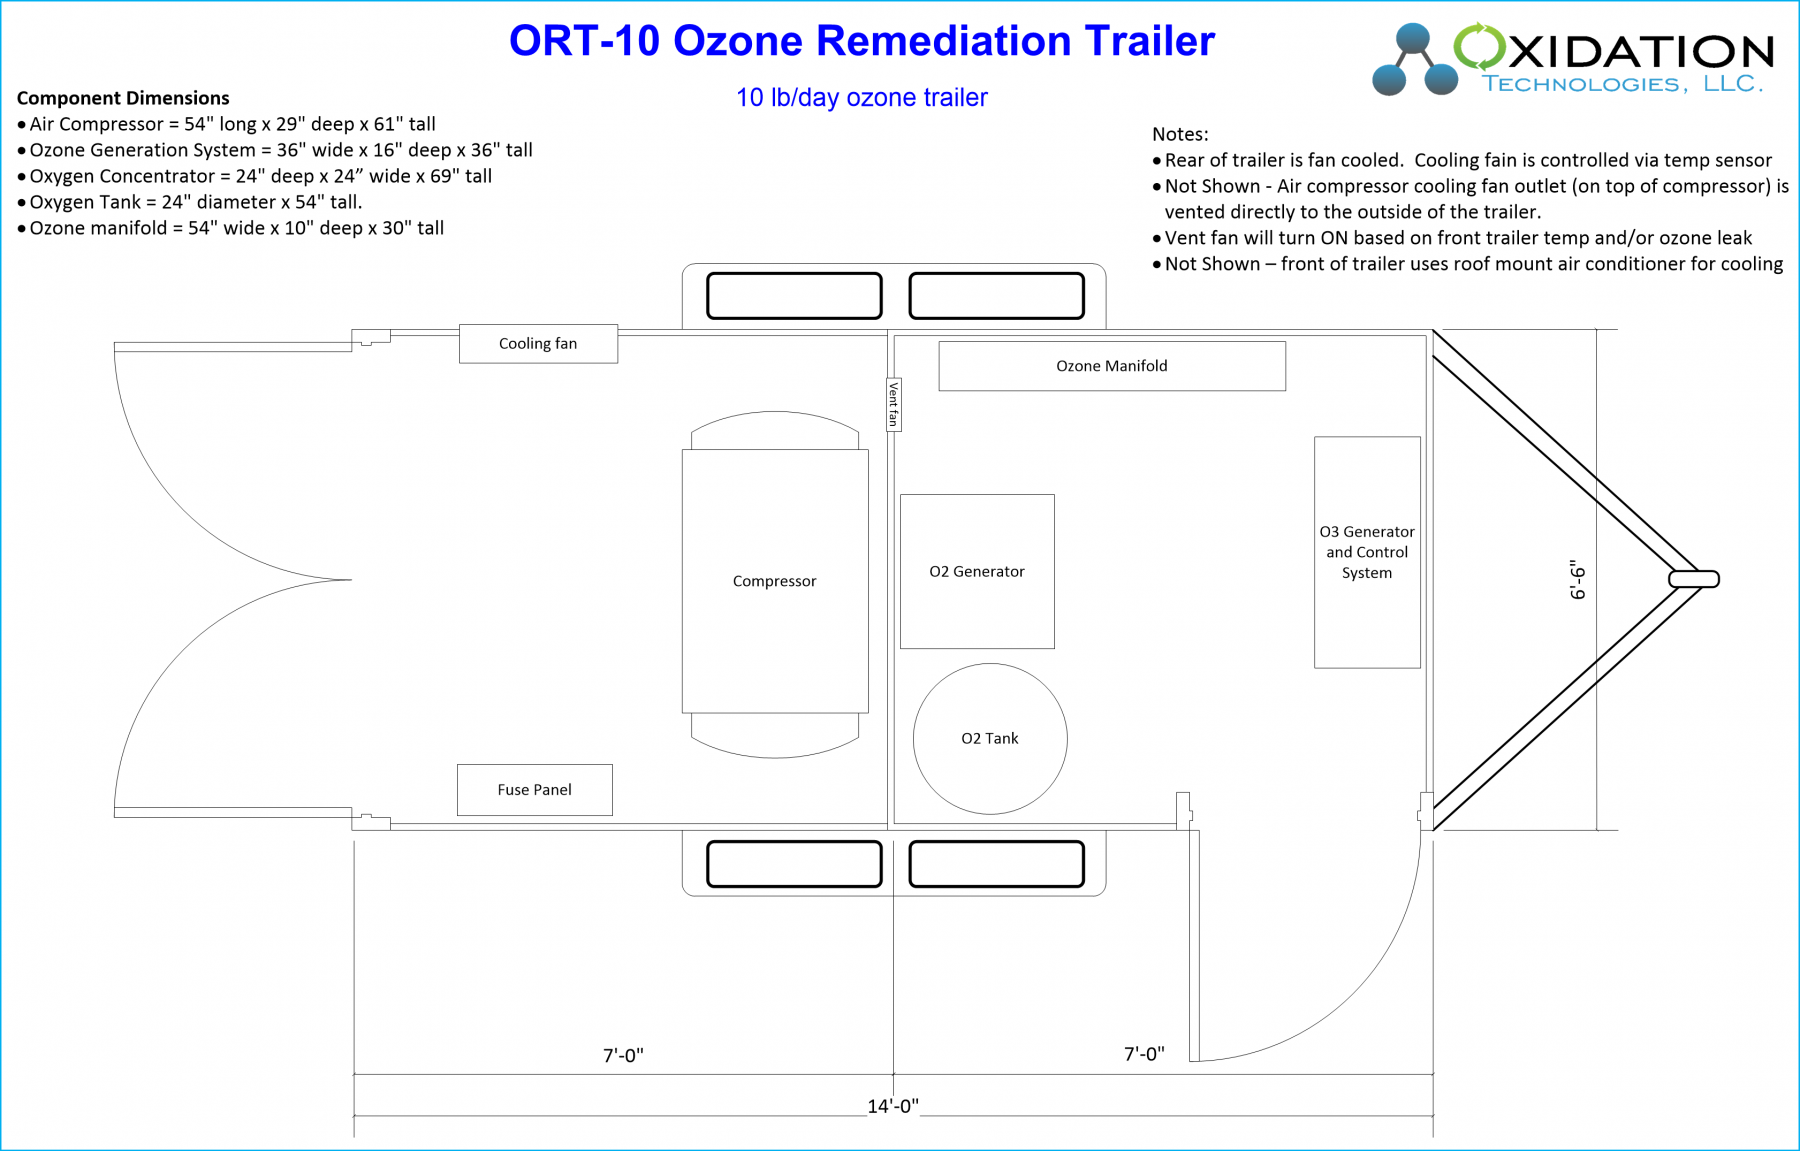 ORT-10 Ozone Remediation Trailer Diagram and layout